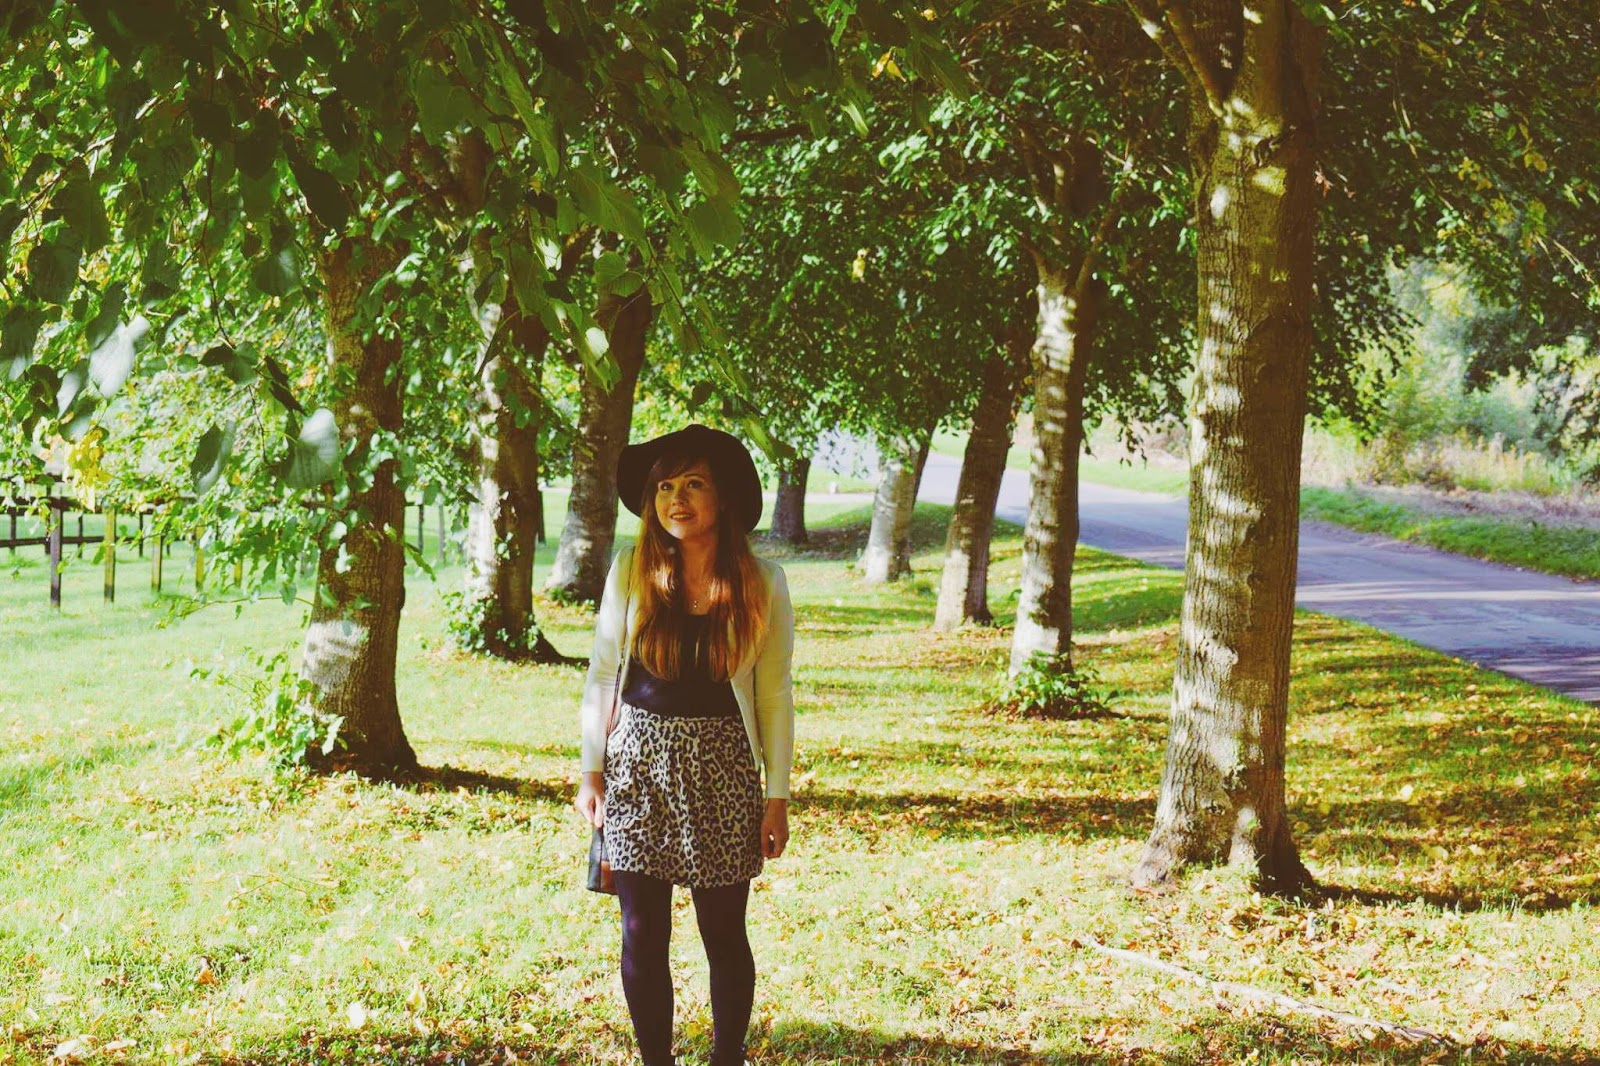 lebellelavie - Enjoying the Autumnal countryside of Salisbury